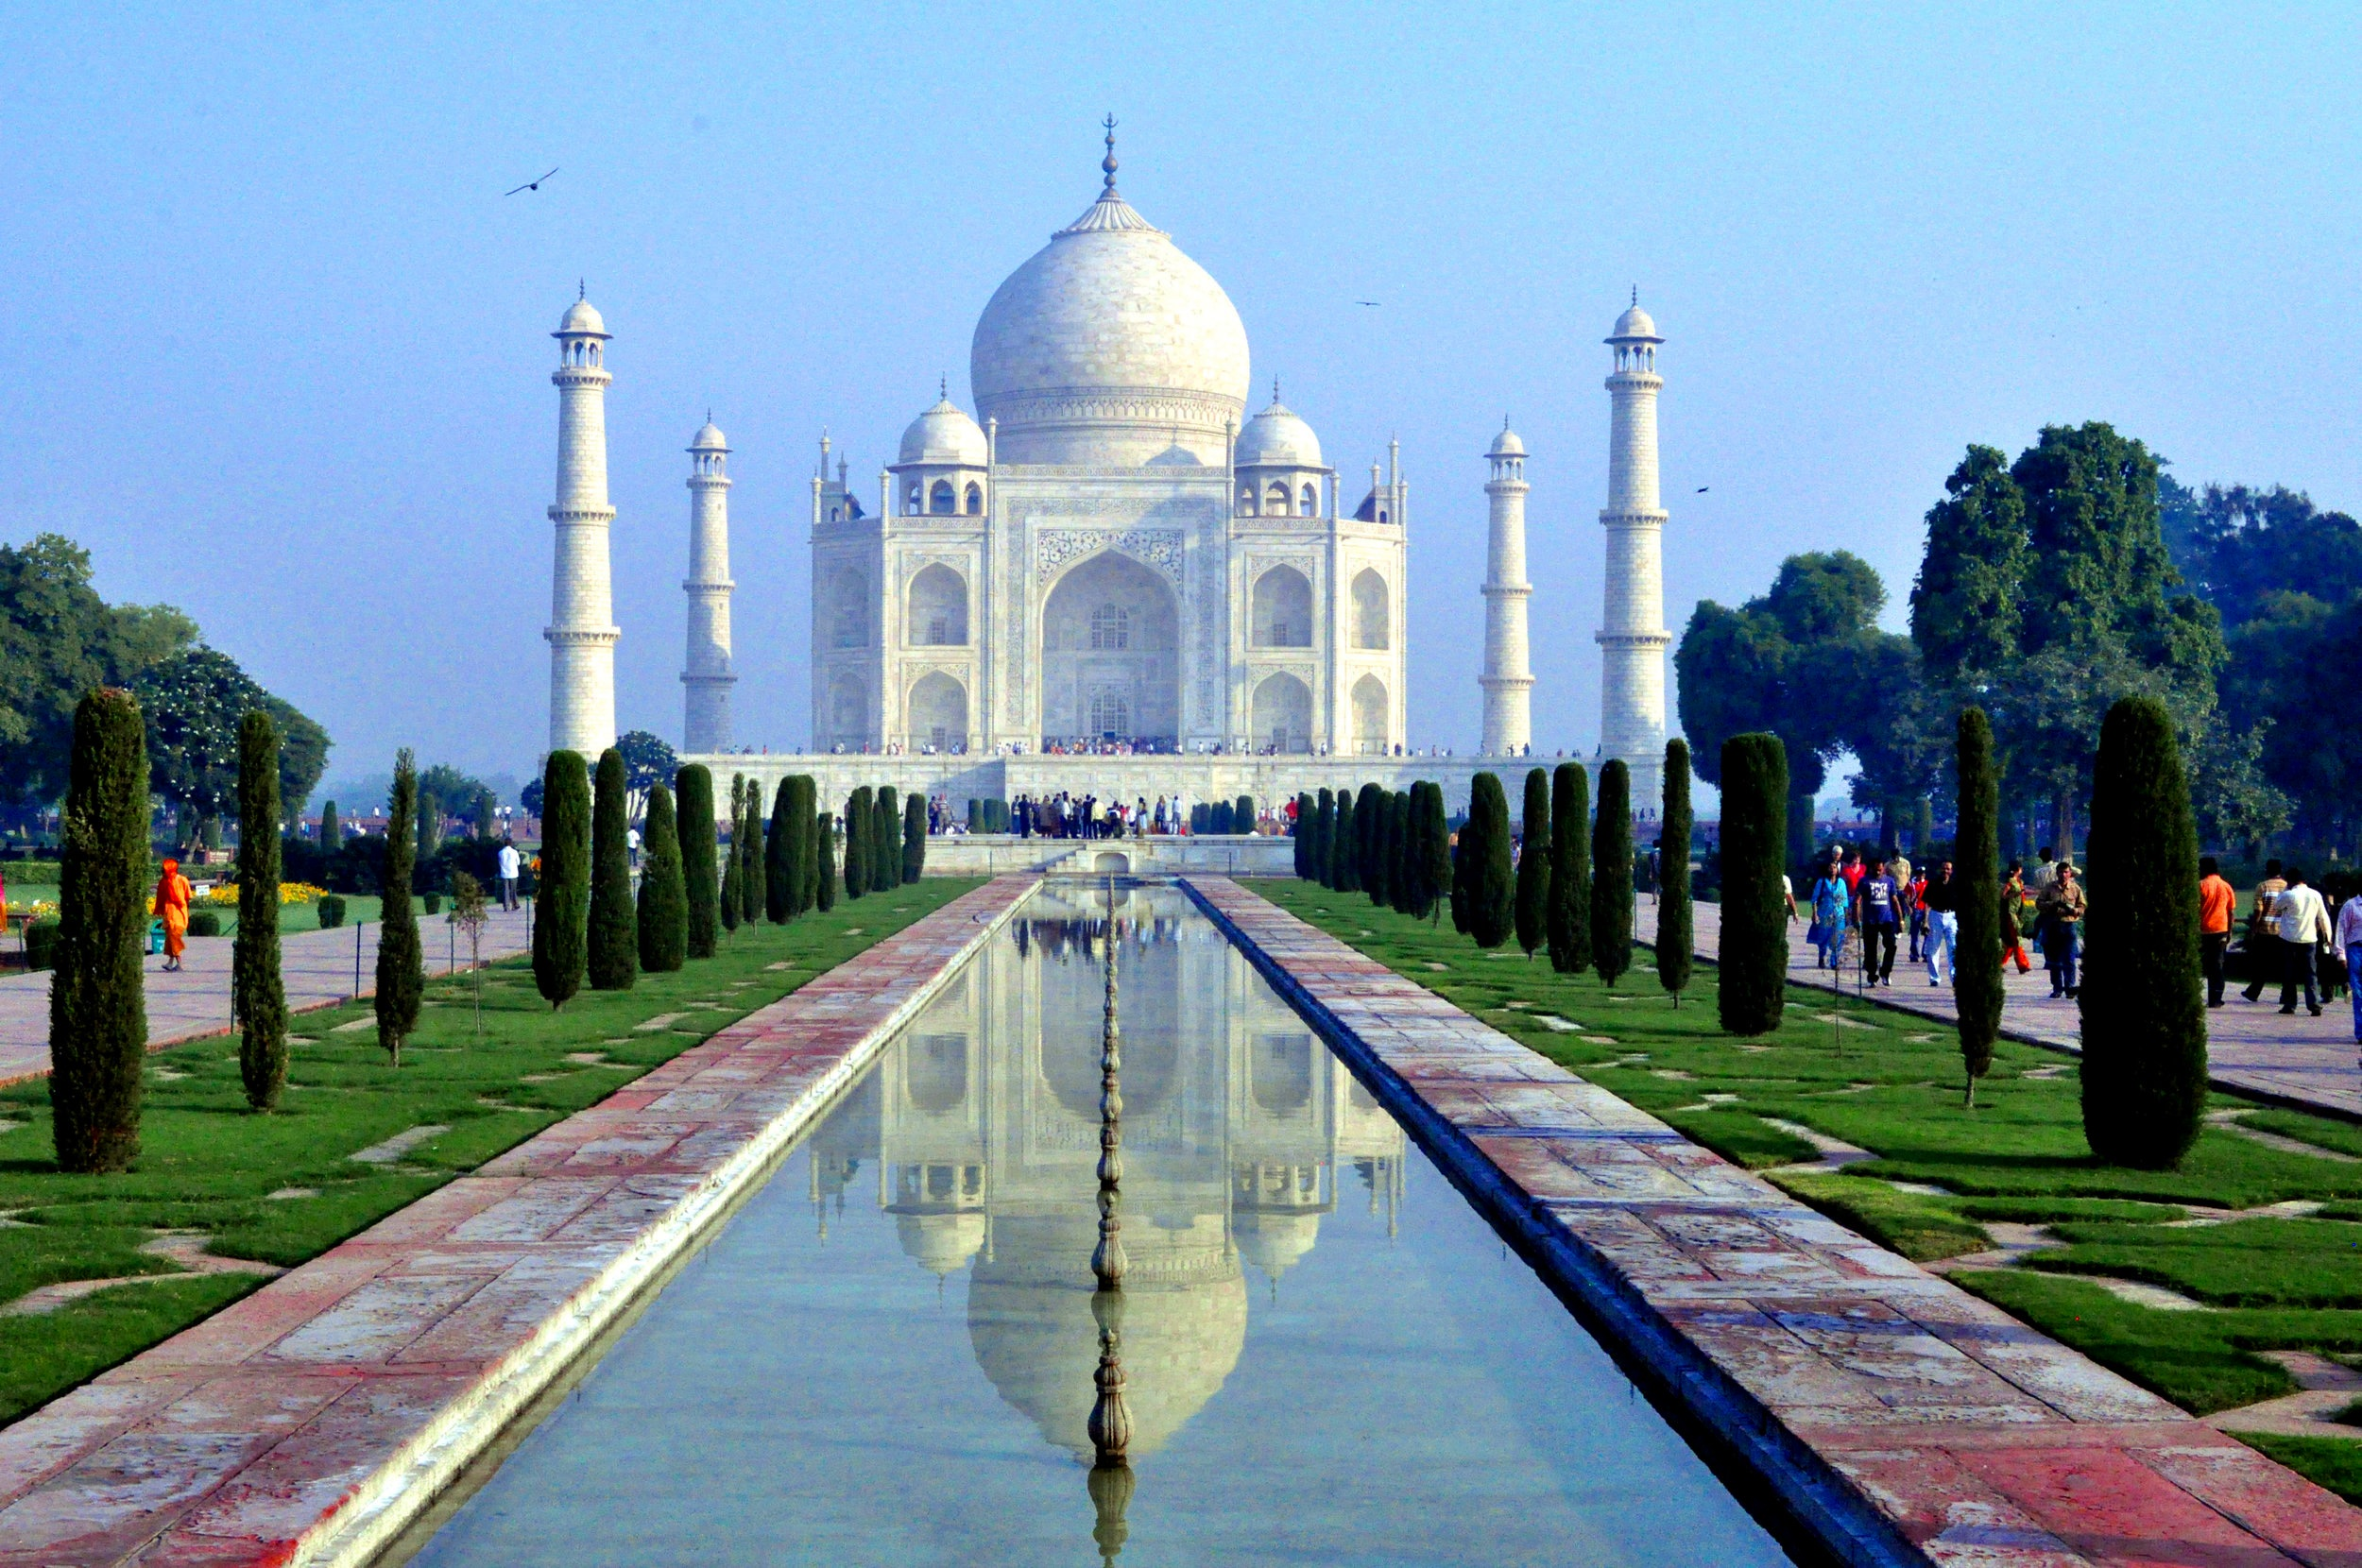 Zoom India - Travel like a Maharaja during our 5 star trip through India! Visit the Taj Mahal and famous cities like Delhi, Mumbai, Veranasi, Udaipur, and Jaidpur while staying in literally the best hotels the world, most of them former palaces!